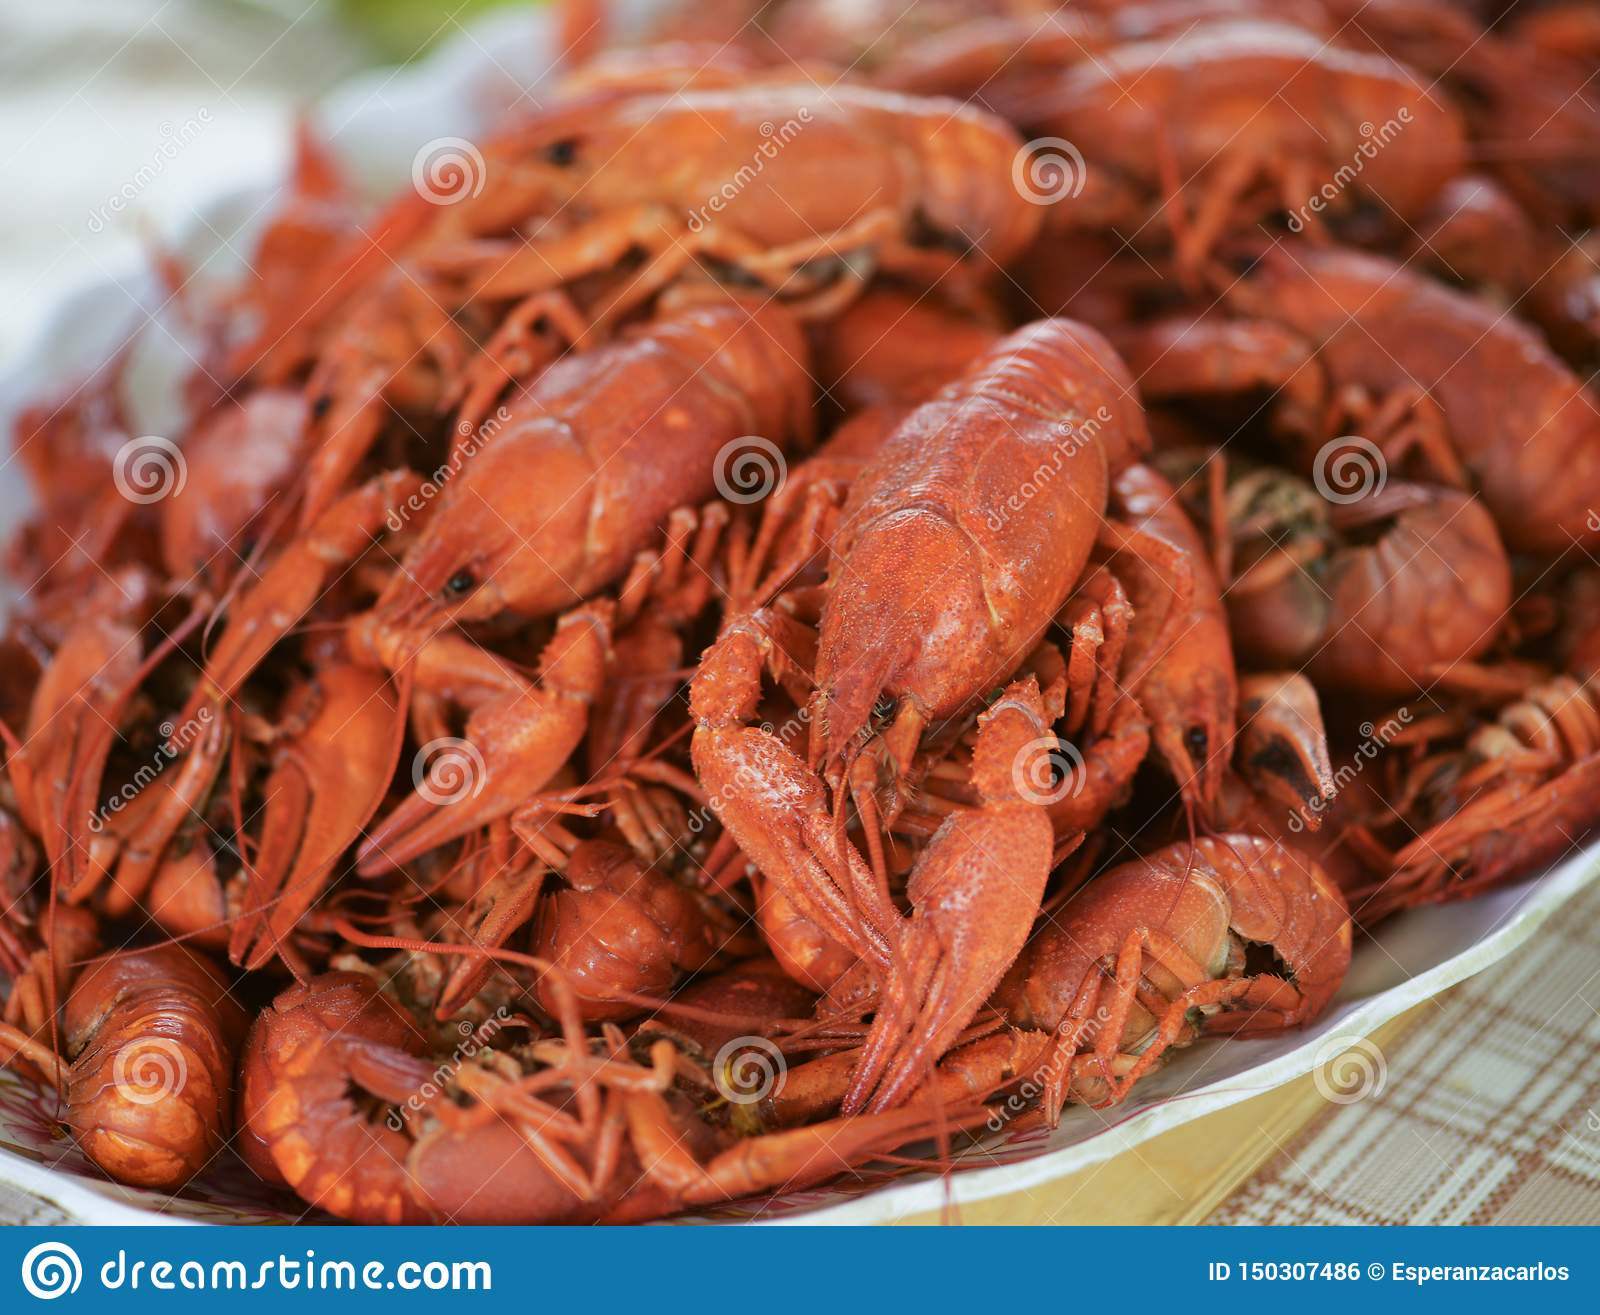 Lots of fresh hot crawfish, appetizer attache.